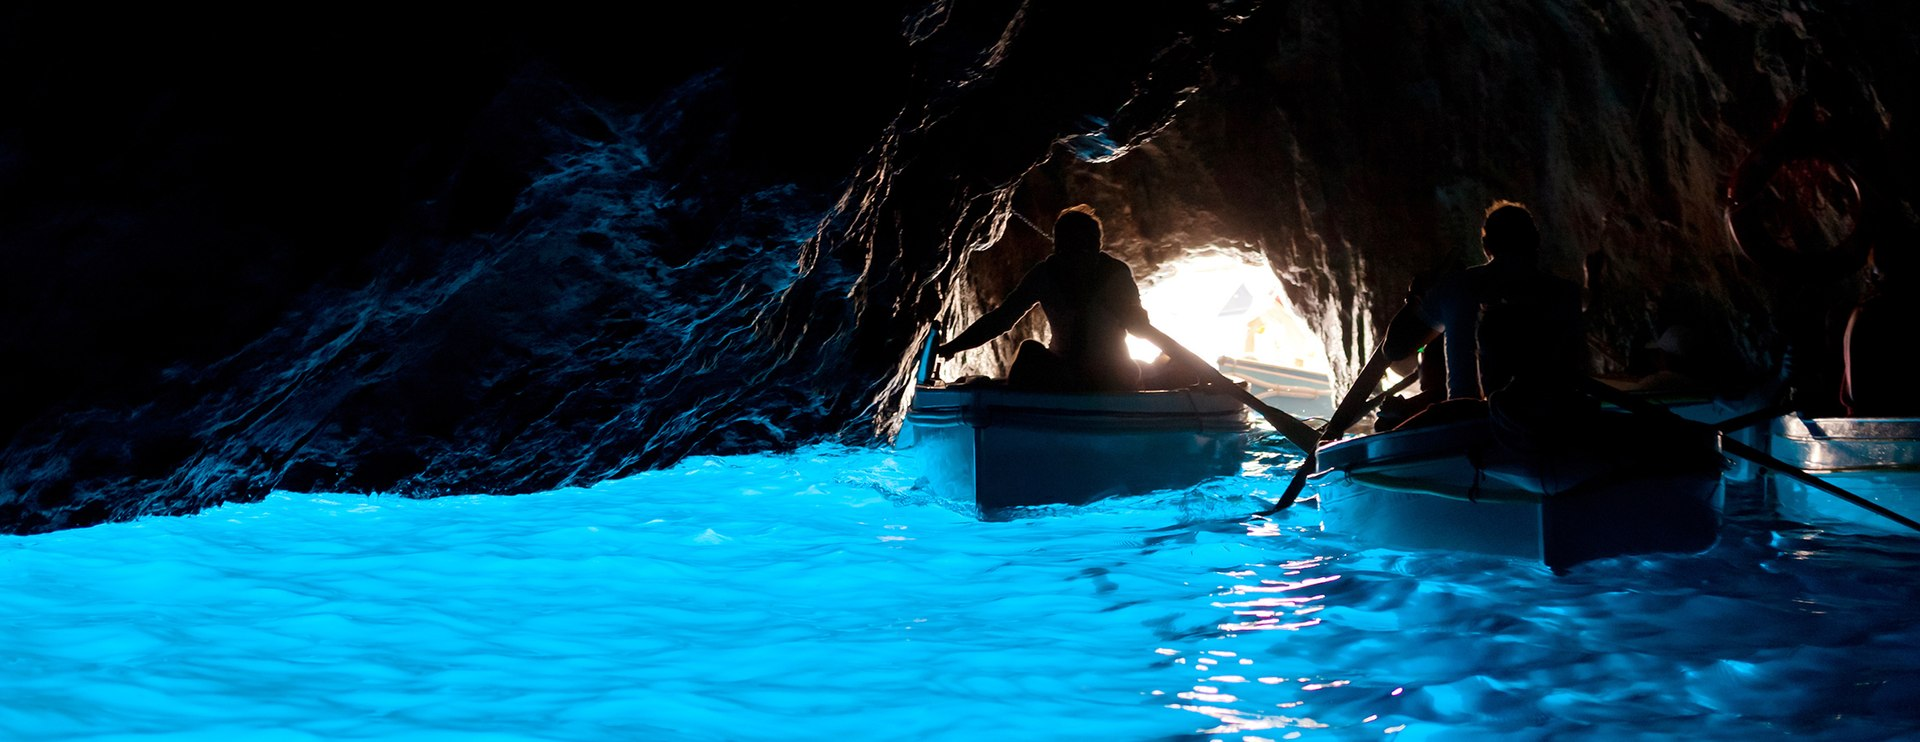 The Blue Grotto Image 1